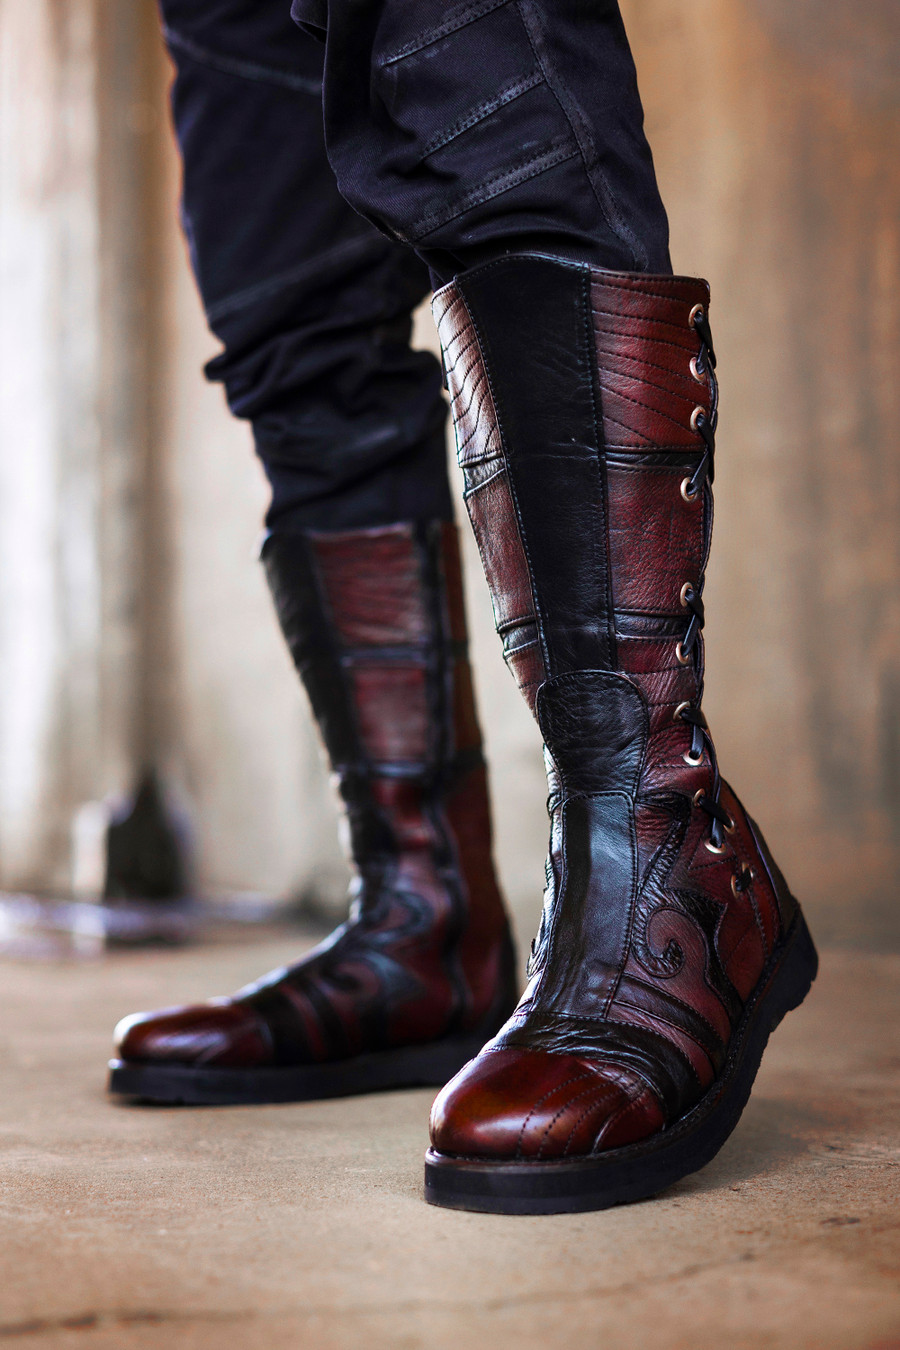 Spiral Moto Boots in Giant's Blood / Black with Silver Hardware